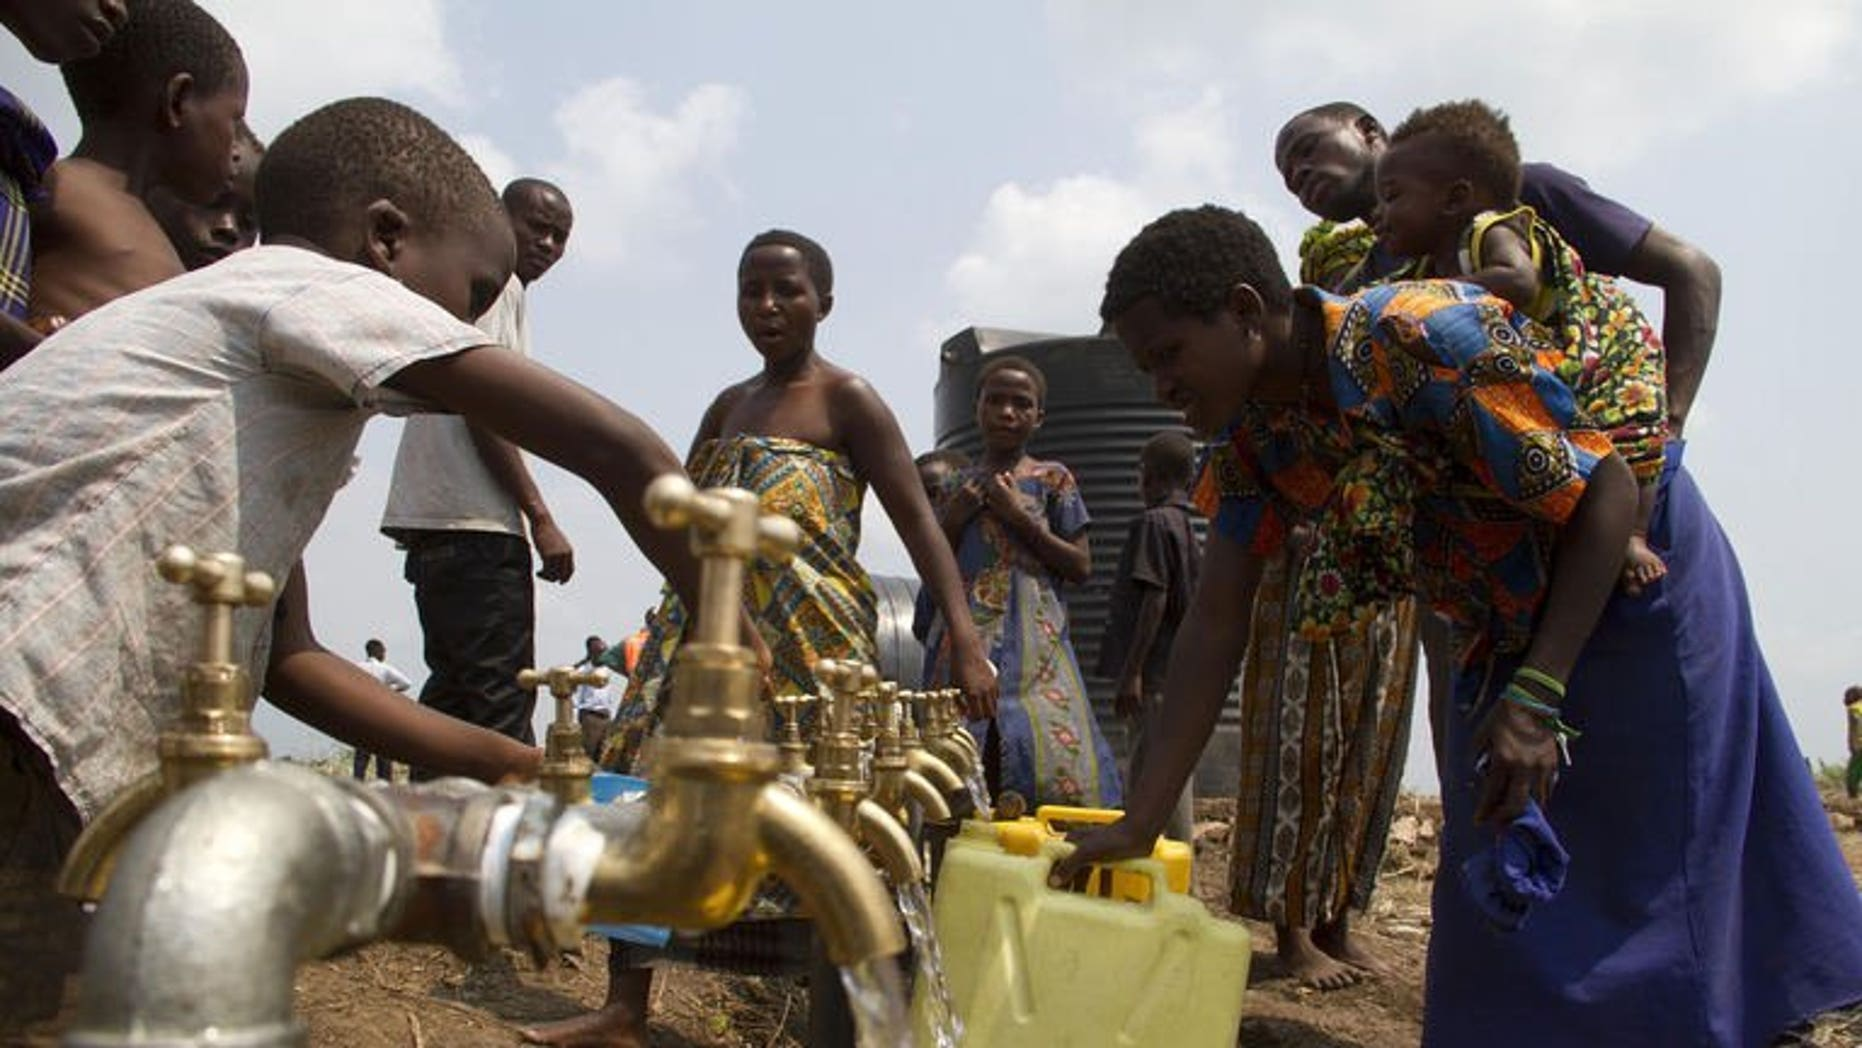 A group of refugees from the Democratic Republic of Congo fetch water at the Bukukwanga camp, on July 15, 2013. A week of renewed fighting in the troubled east has driven more than 4,000 people to seek refuge in the provincial capital Goma, aid workers said Saturday.